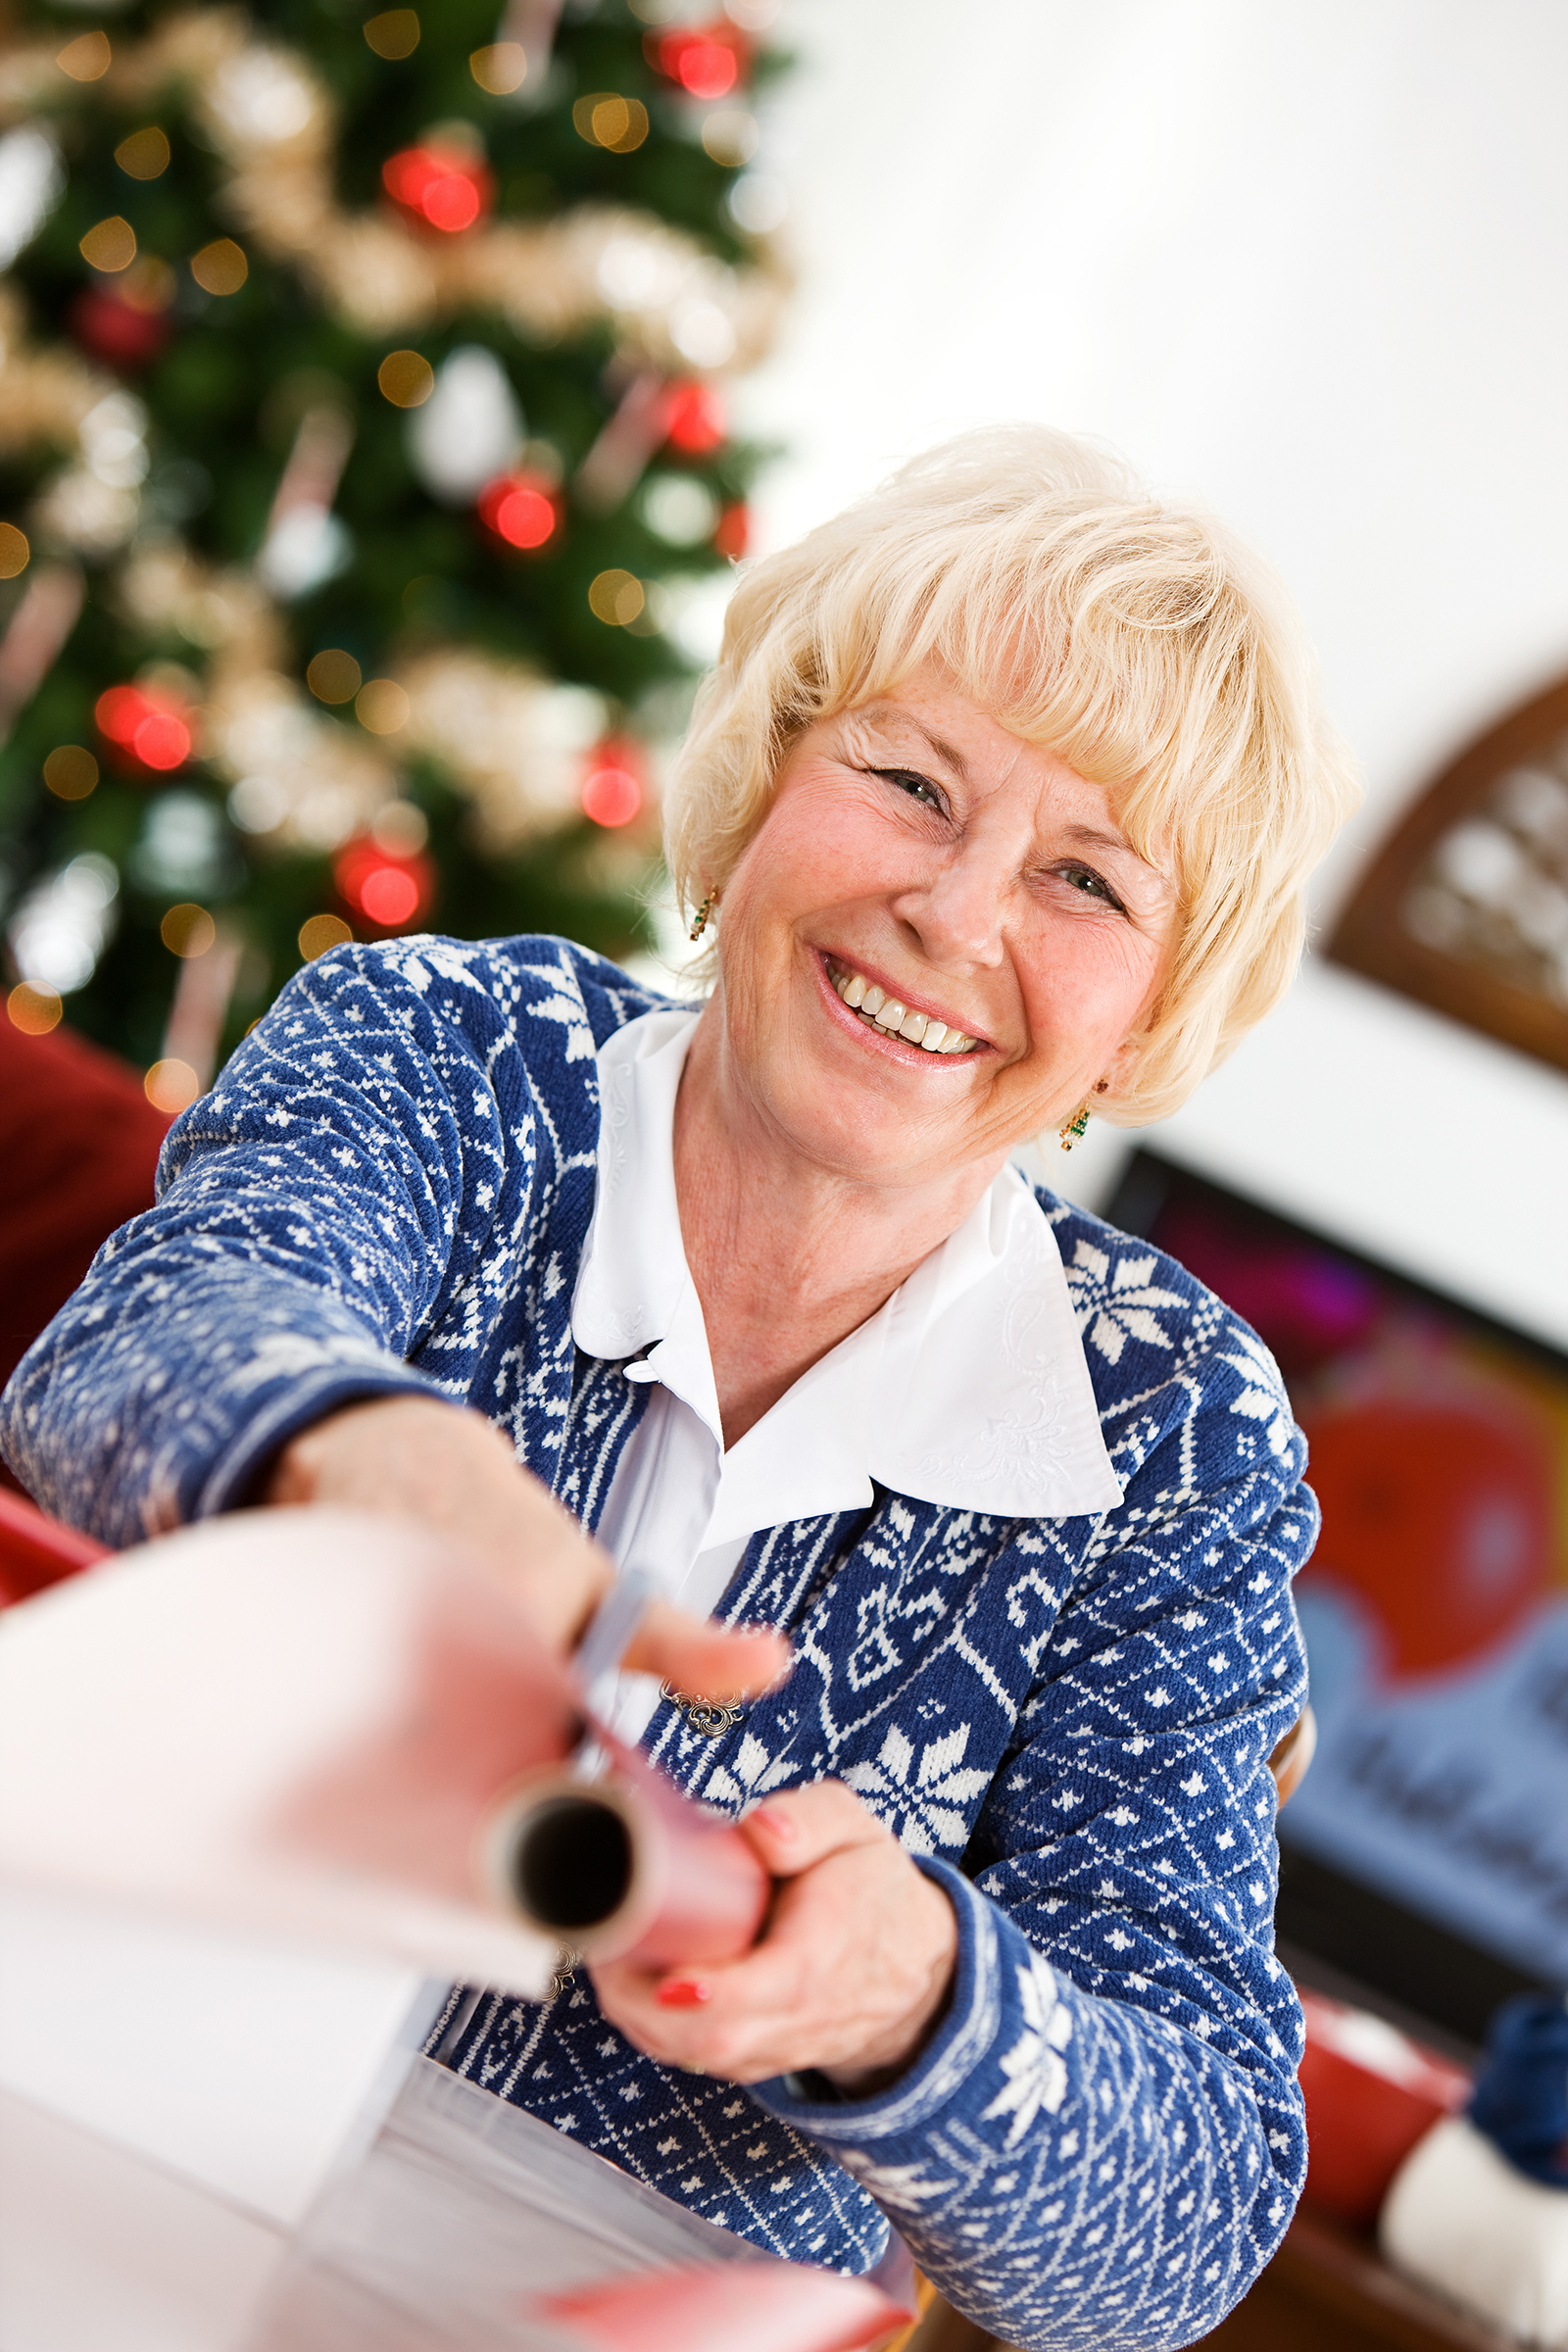 Christmas: Senior Woman Wrapping Gifts